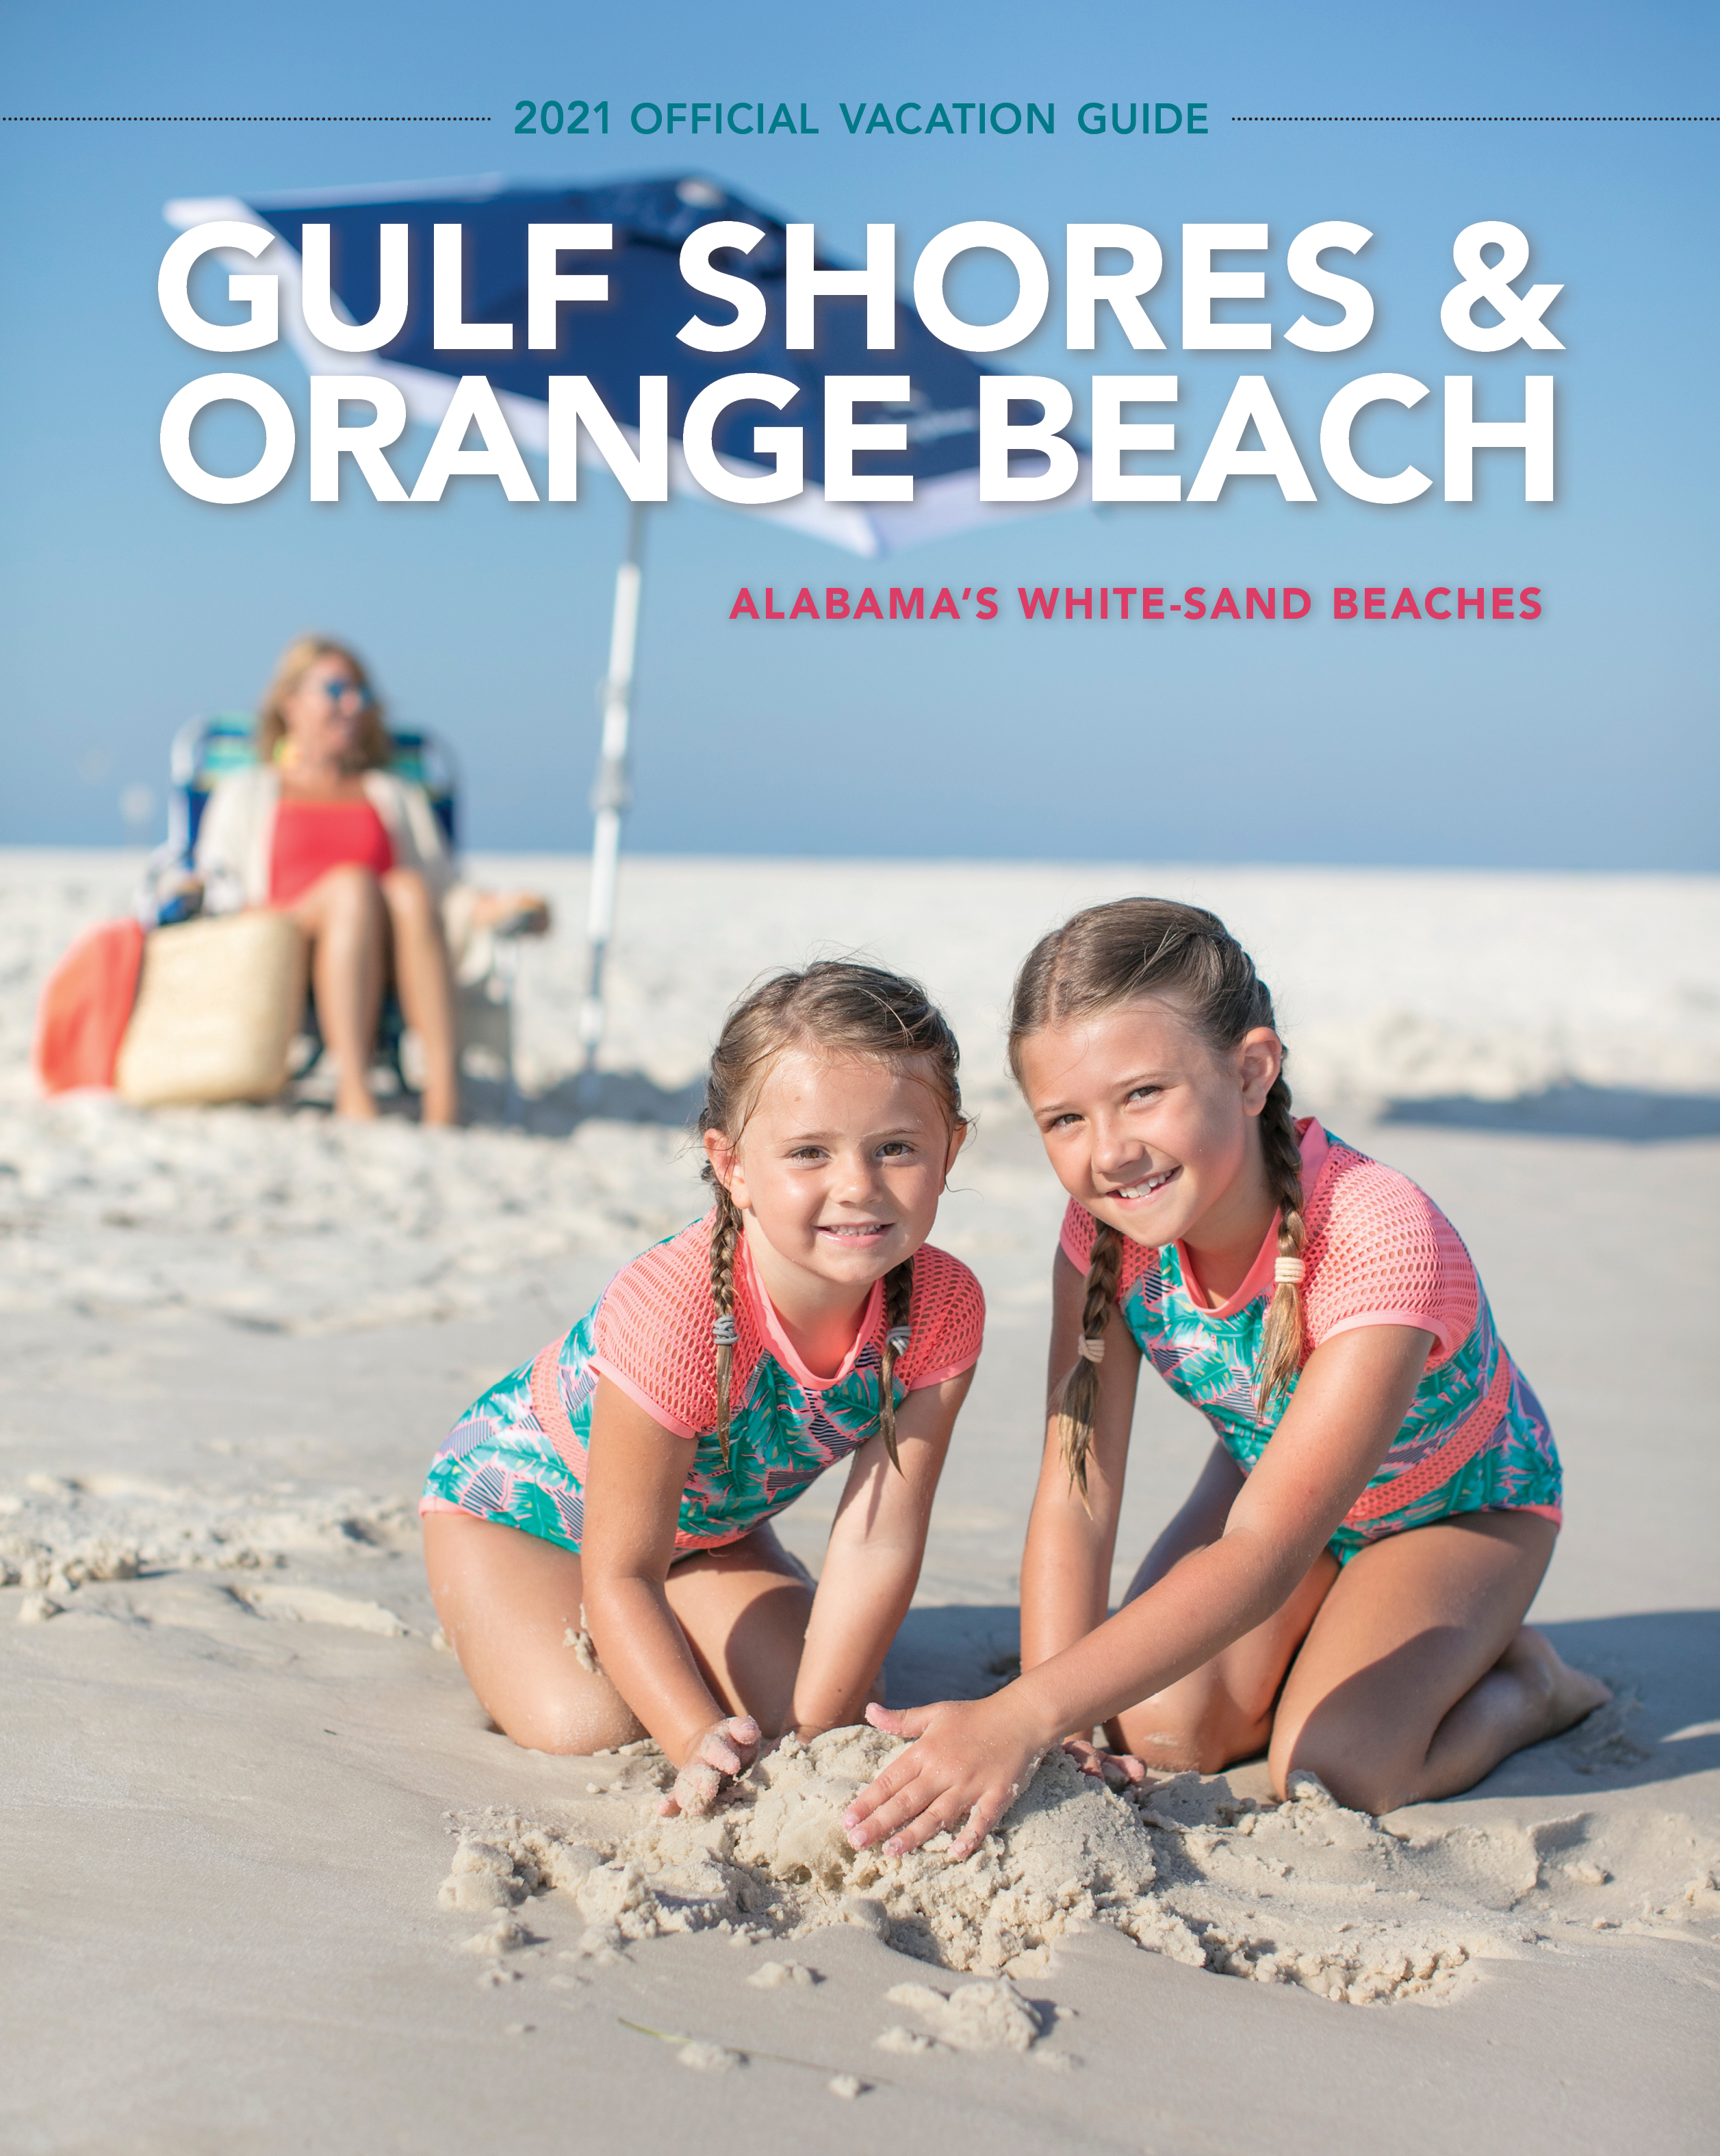 Gulf Shores & Orange Beach Vacation Guide, AL 2021 | Travel Guides